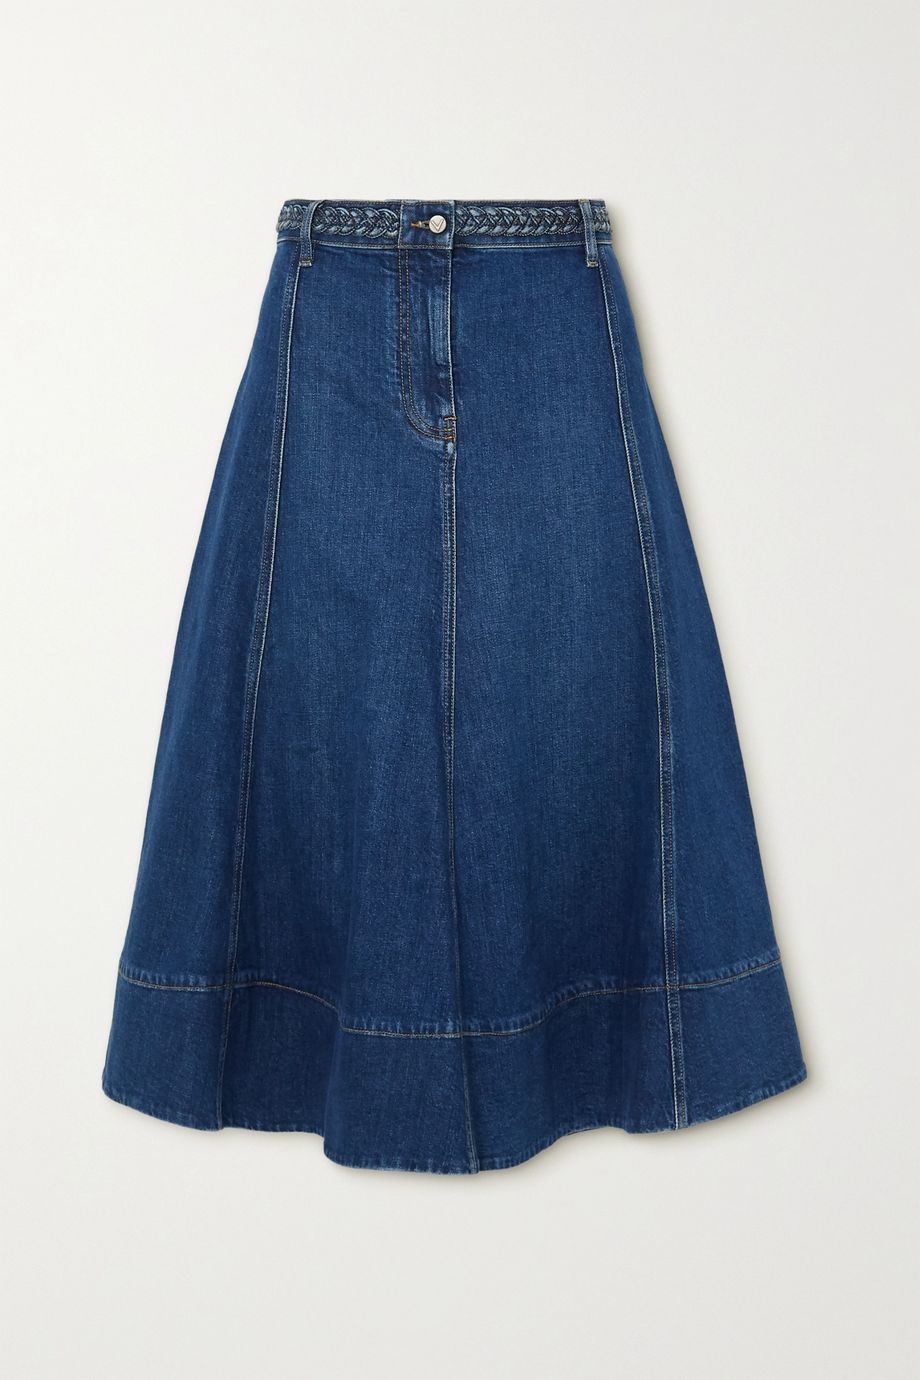 Valentino Braided denim midi skirt